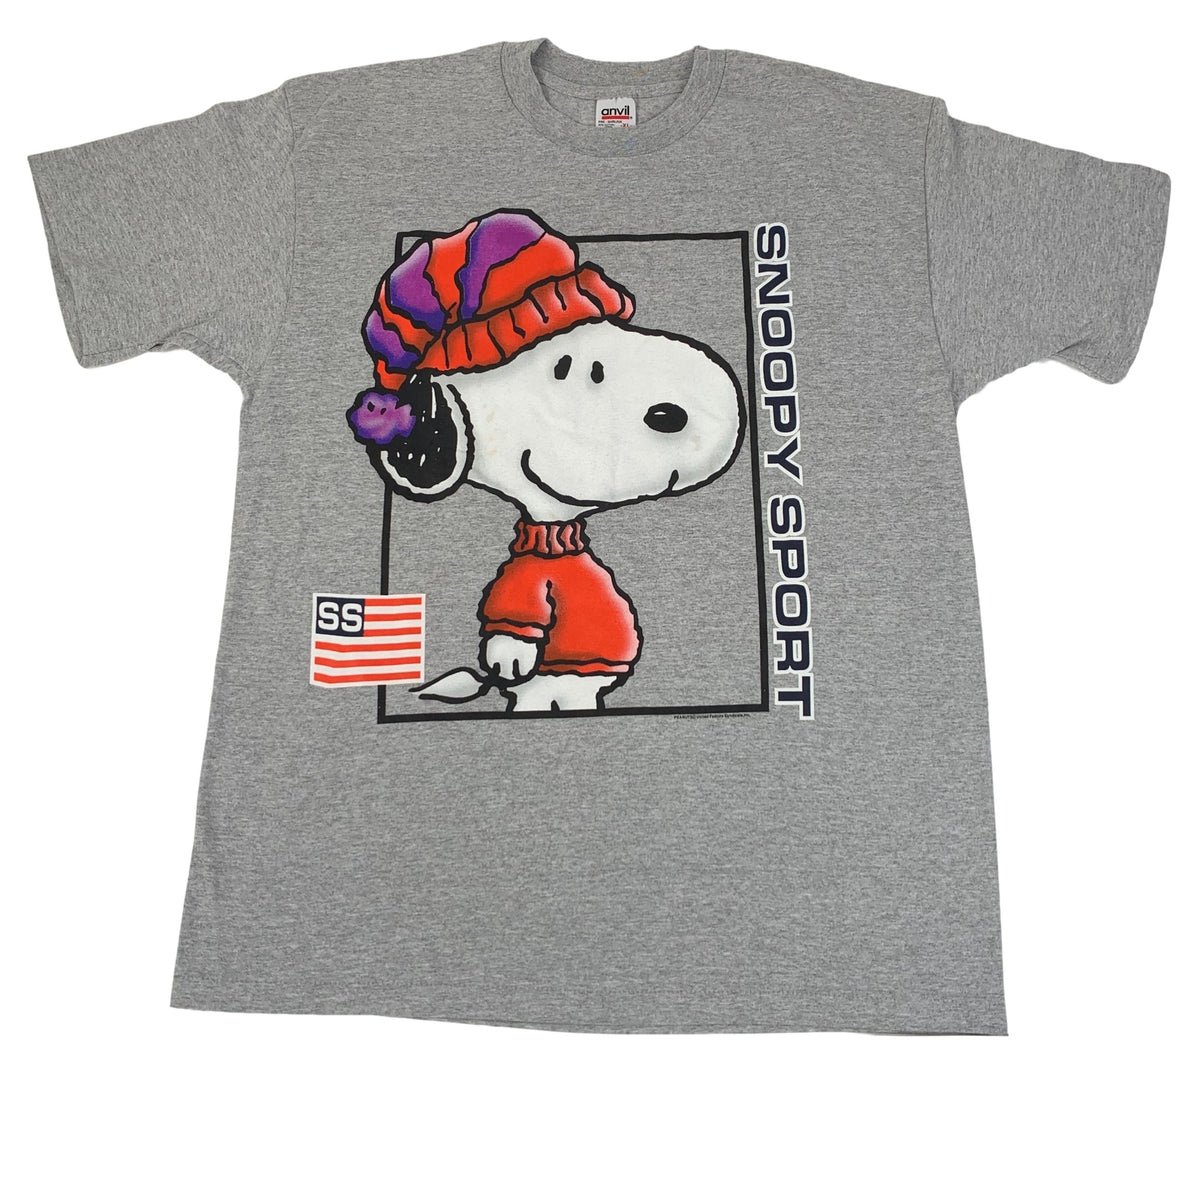 "Vintage Snoopy ""Snoopy Sport"" T-Shirt"